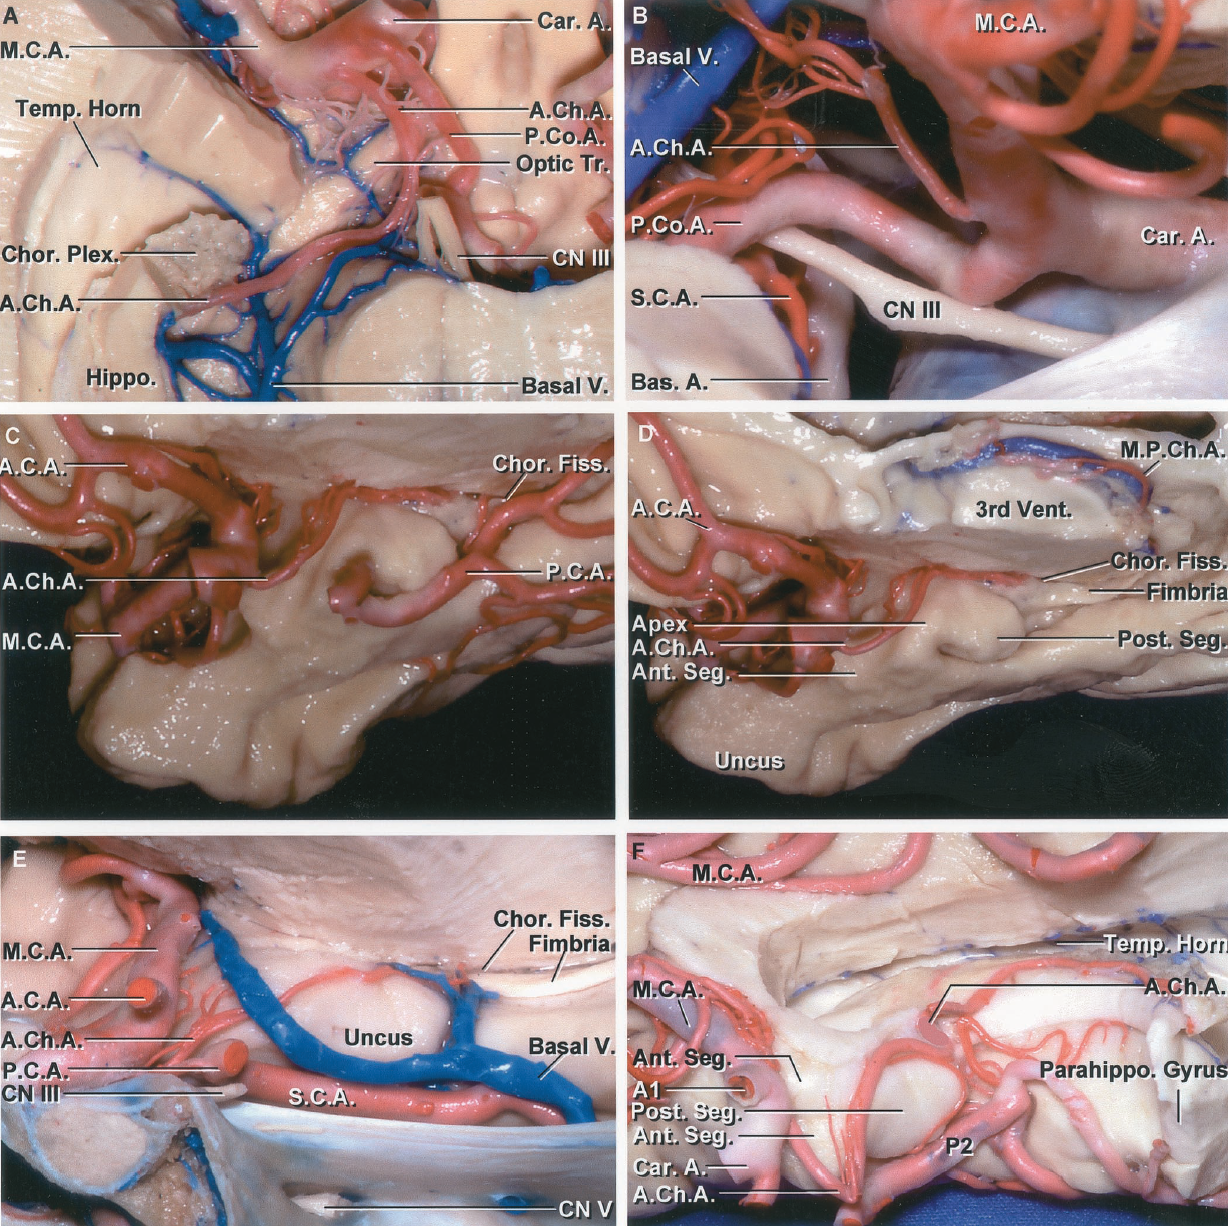 FIGURE 2.10. Anterior choroidal artery. A, inferior view. The lower part of the right temporal pole has been removed to expose the AChA, which passes backward to reach the medial side of the optic tract where it turns laterally, passing again below the optic tract and around the uncus to enter the temporal horn. B, lateral view. The right AChA arises above the origin of the PComA and passes upward and backward around the uncus to reach the temporal horn. C, medial side of the right uncus. The AChA passes around the medial aspect of the uncus to reach the lower end of the choroidal fissure where it enters the temporal horn. The PCA courses along the posterior aspect of the uncus. D, the PCA has been removed. The AChA ascends along the anterior segment of the uncus to reach the uncal apex where it turns laterally above the posterior uncal segment to enter the inferior choroidal point at the lower end of the choroidal fissure located just behind the posterior uncal segment and the head of the hippocampus. The anterior uncal segment contains the amygdala and the posterior segment is formed predominantly by the head of the hippocampus. E, medial view of the right AChA in another specimen. The cross section extends through the midline of the sella. The view is directed laterally over the top of the sella to the medial aspect of the internal carotid artery, uncus, and the origin of the AChA. The AChA passes around the uncus to reach the lower end of the choroidal fissure. F, medial view of another temporal lobe. The AChA pursues an angulated course, descending along the anterior segment of the uncus, but at the uncal apex it turns sharply upward, reaching the upper part of the posterior uncal segment before entering the temporal horn. A., artery; A.C.A., anterior cerebral artery; A.Ch.A., anterior choroidal artery; Ant., anterior; Bas., basilar; Car., carotid; Chor., choroid, choroidal; CN, cranial nerve; Fiss., fissure; Hippo., hippocampus; M.C.A., middle cerebral artery;